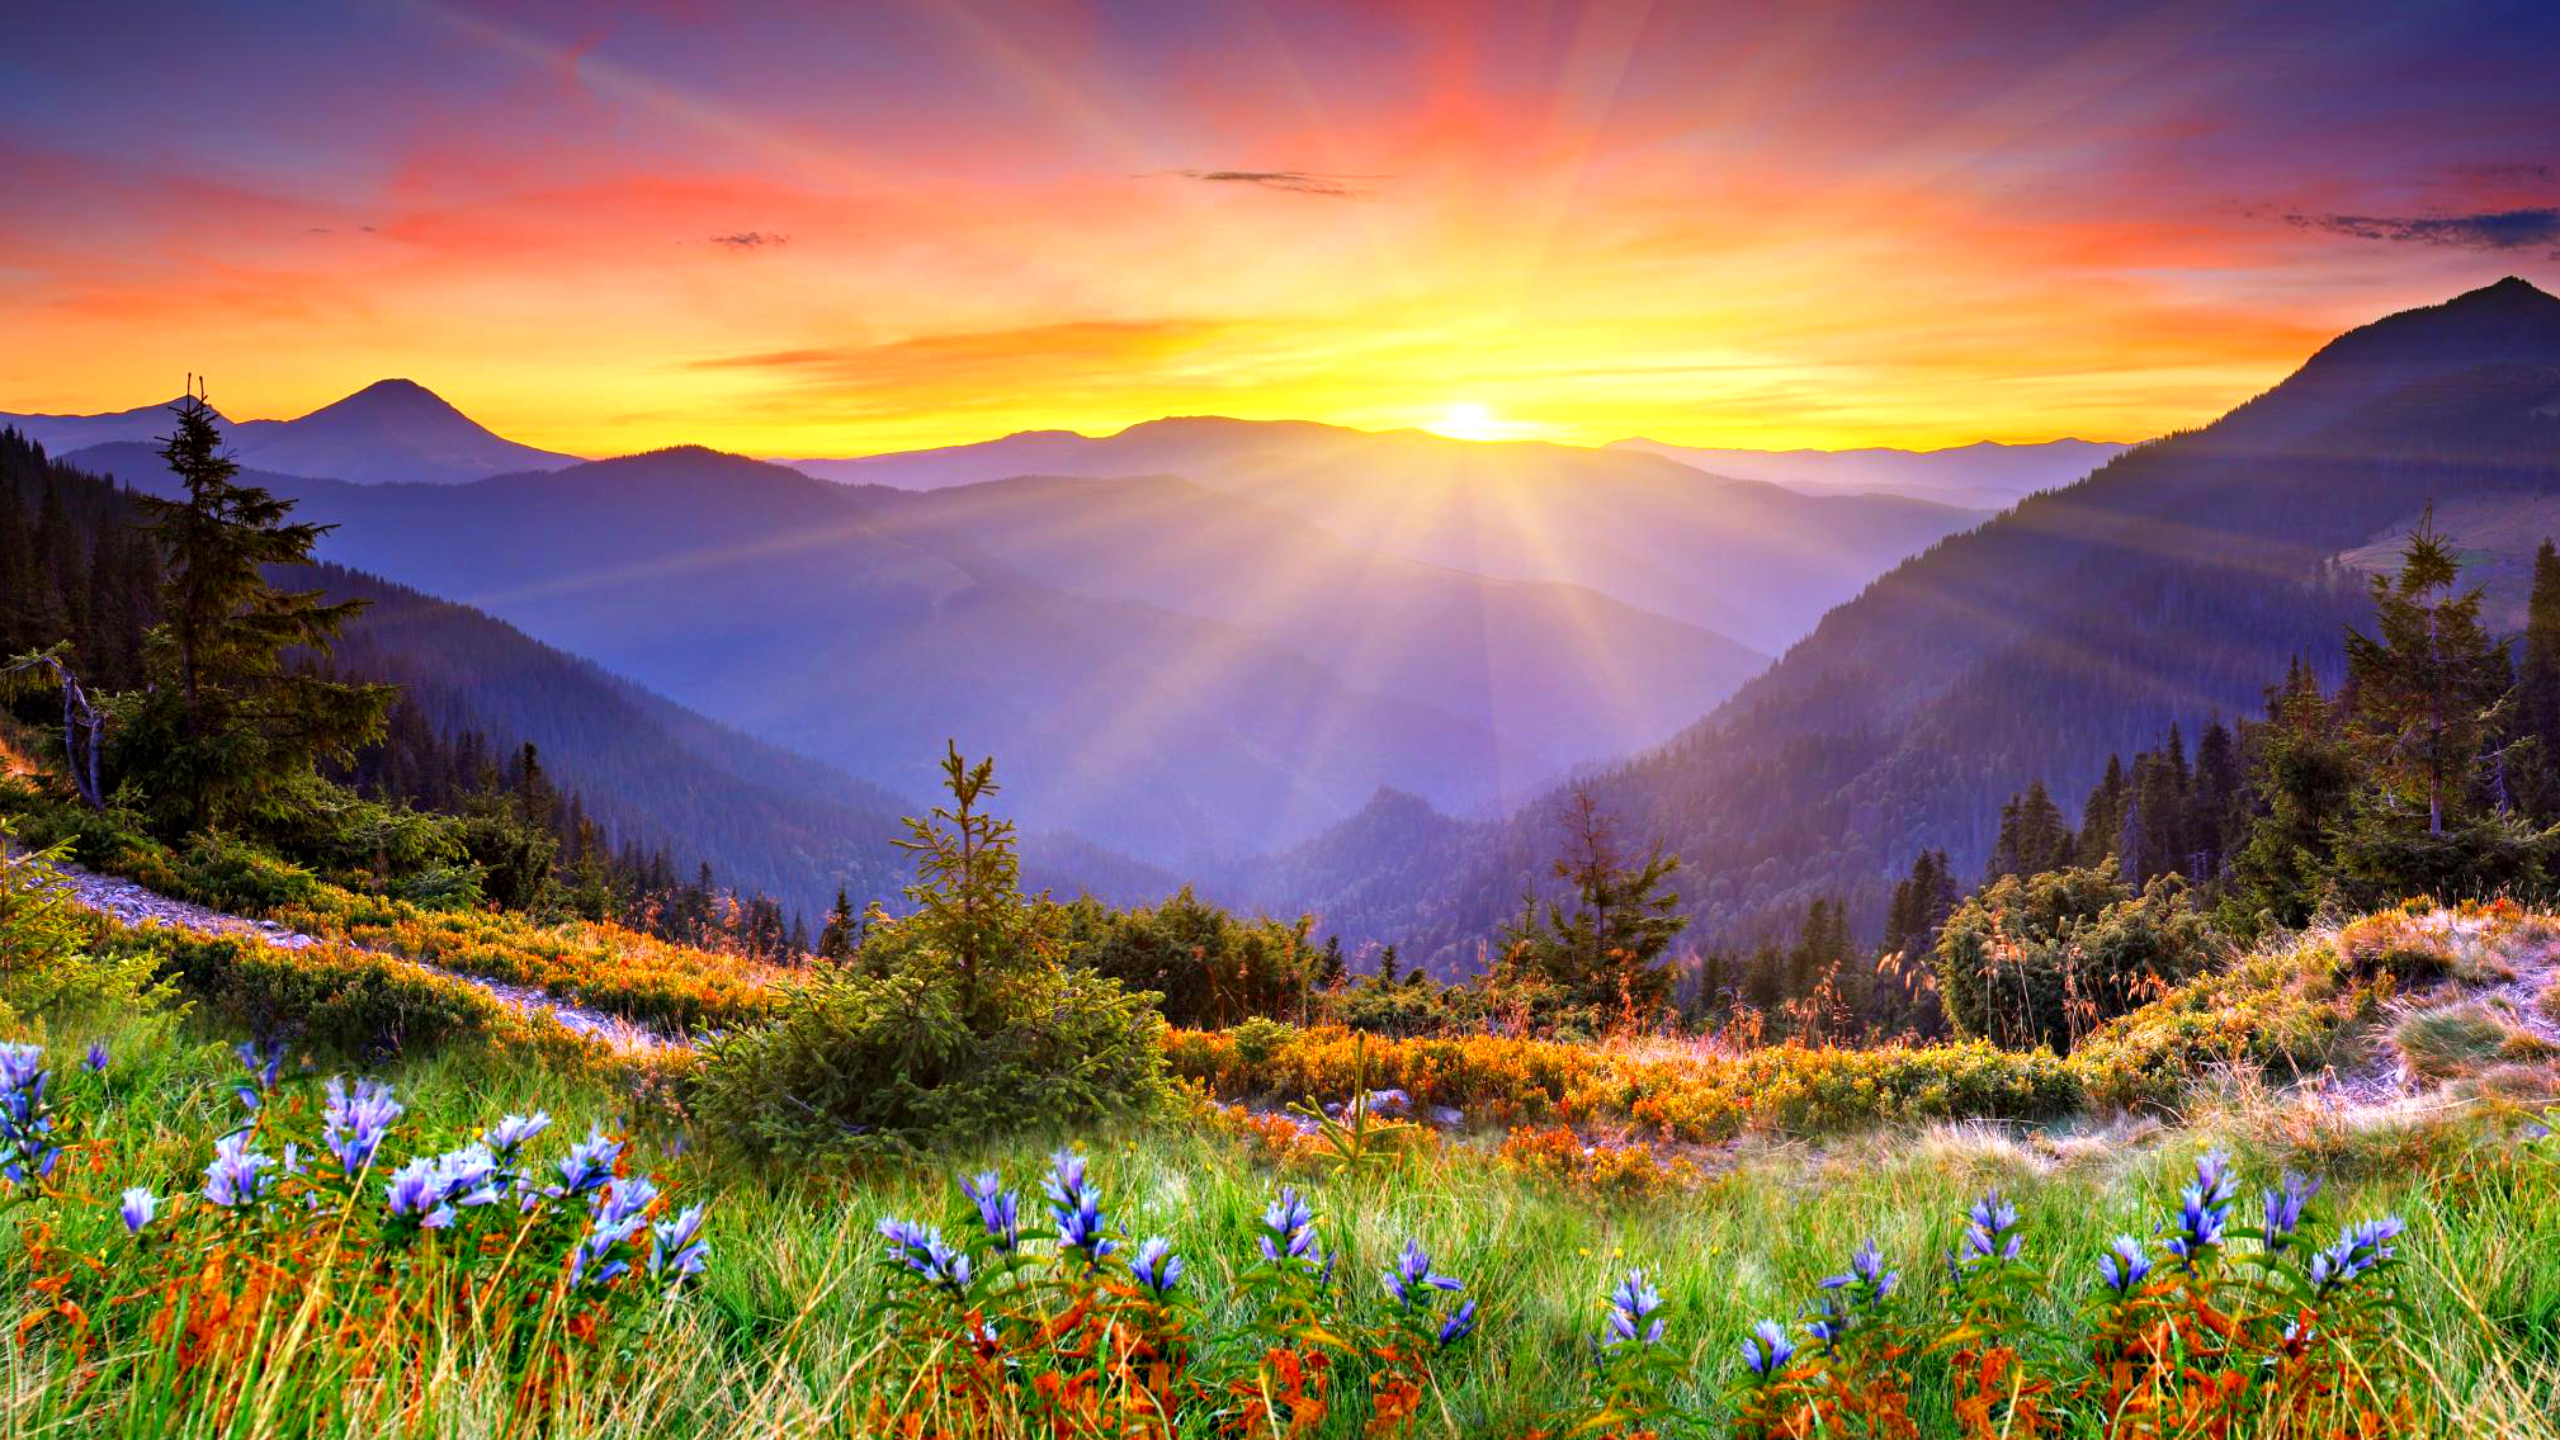 beautiful mountains sunrise wallpaper - photo #15